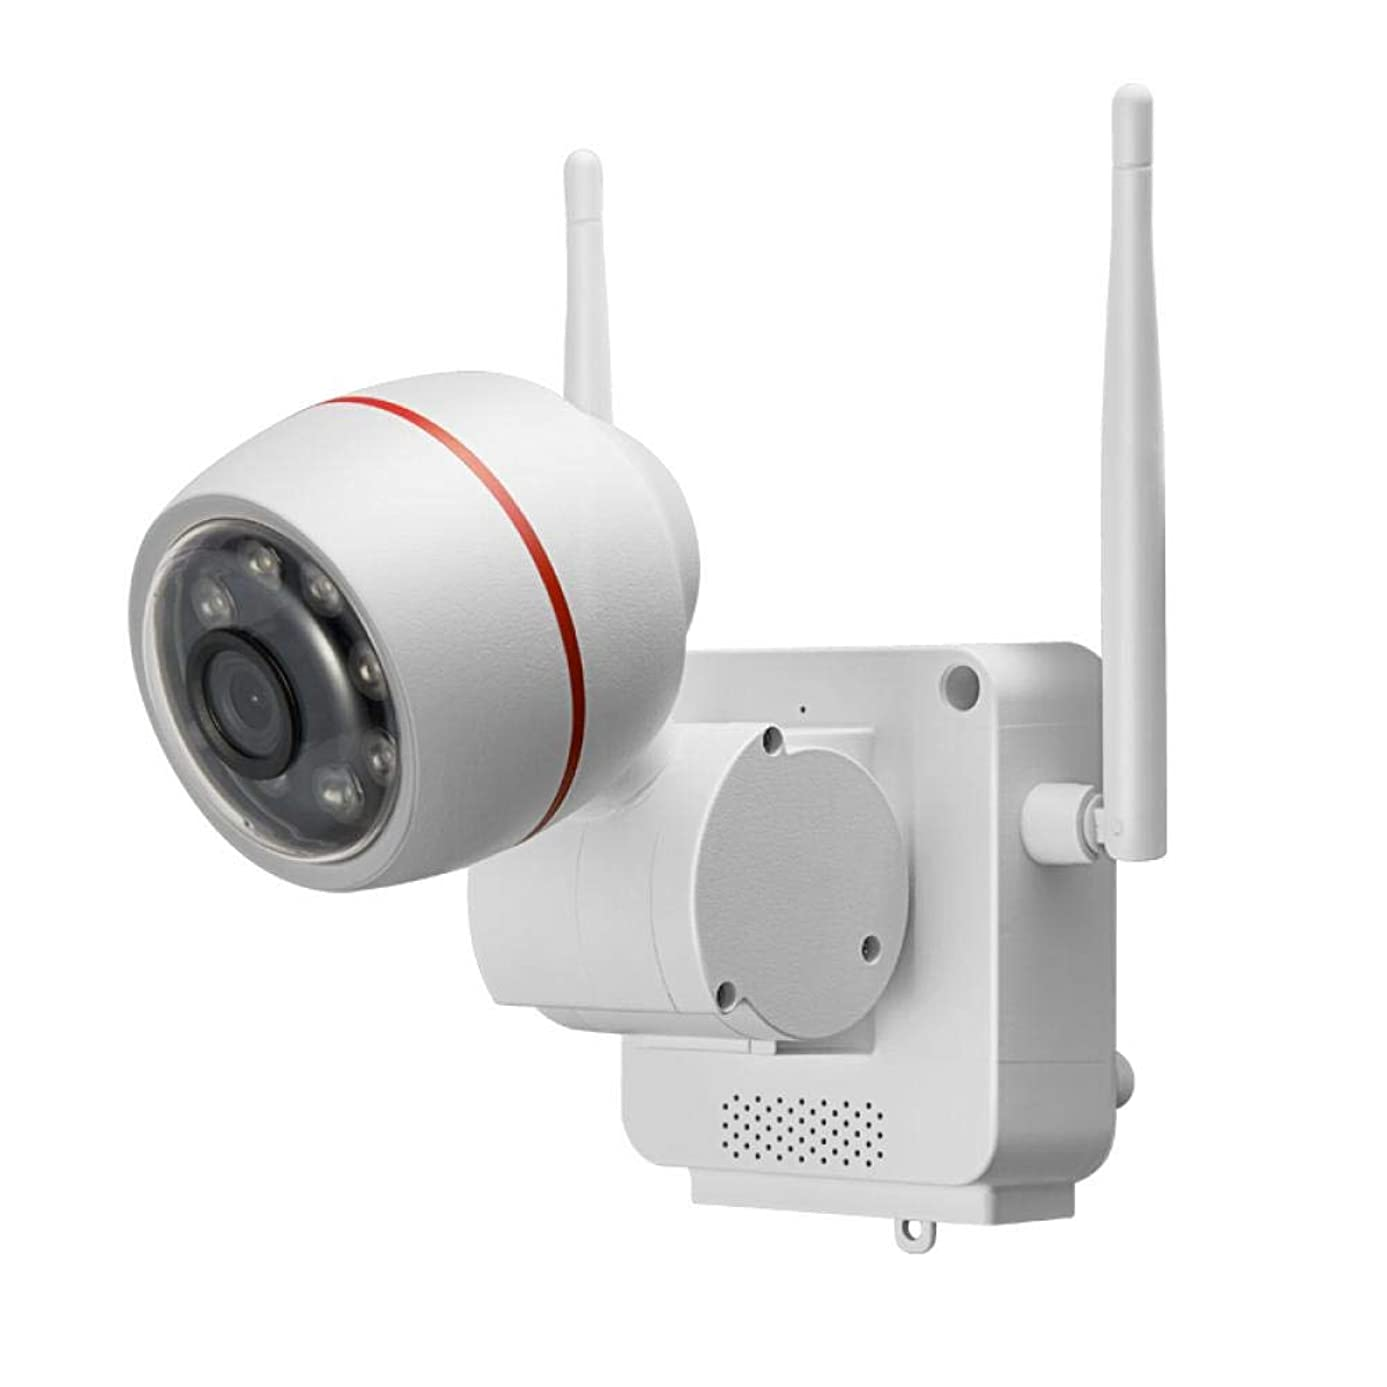 PETU Outdoor Security Camera, 1080P HD Waterproof Video Surveillance WiFi Network Security System Compatible with iOS and Android (White, OneSize)